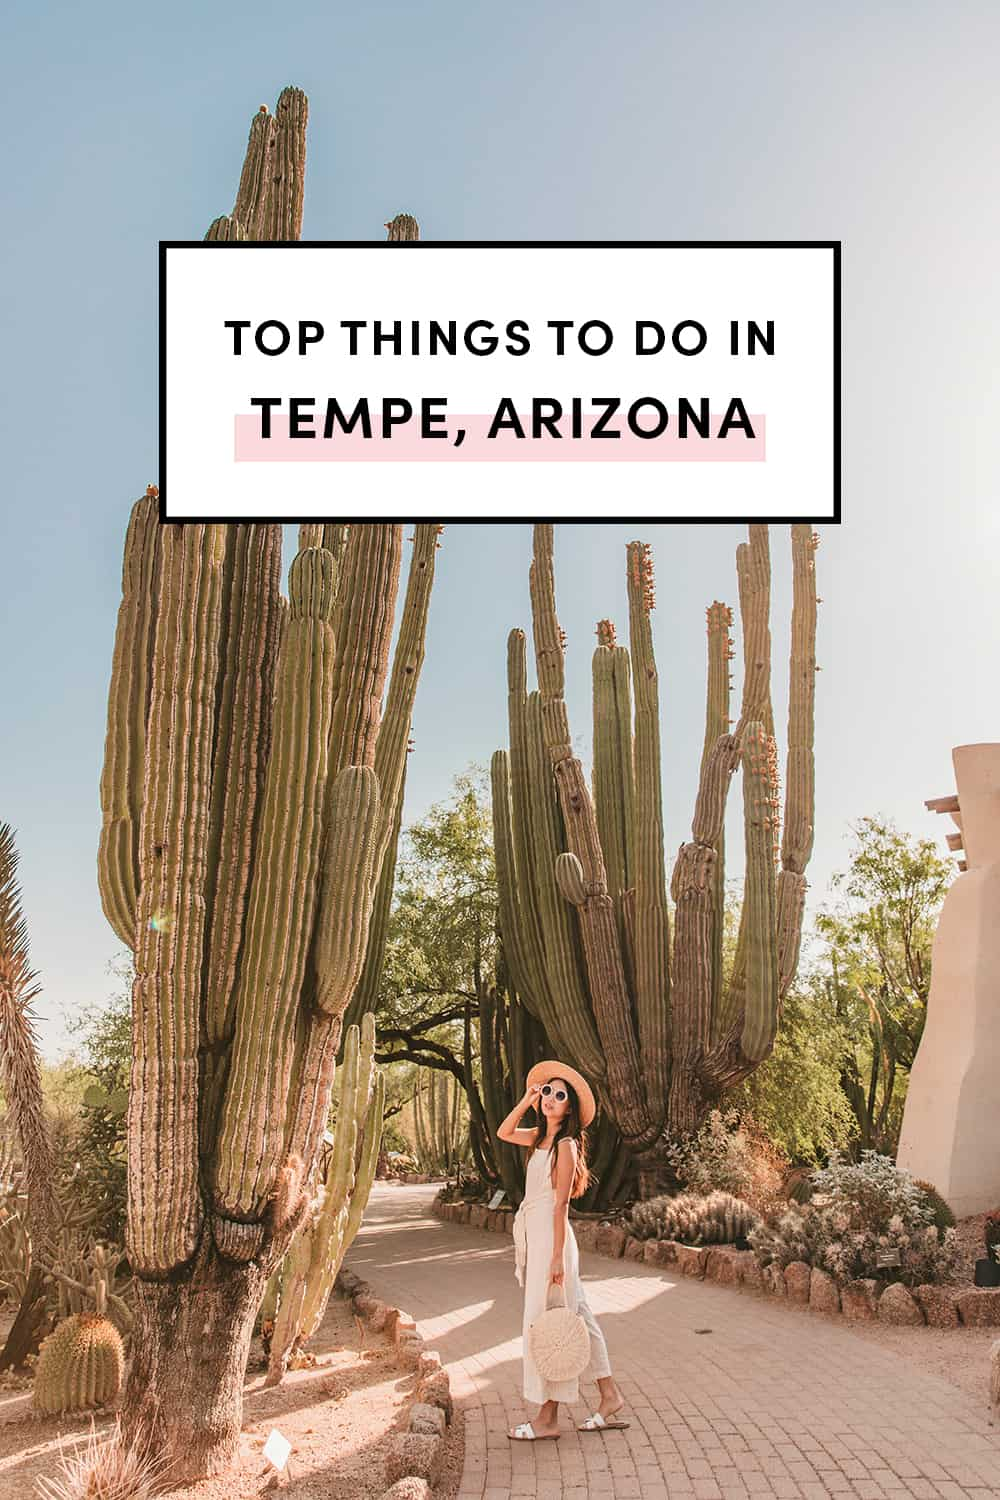 Top Things To Do In Tempe Arizona